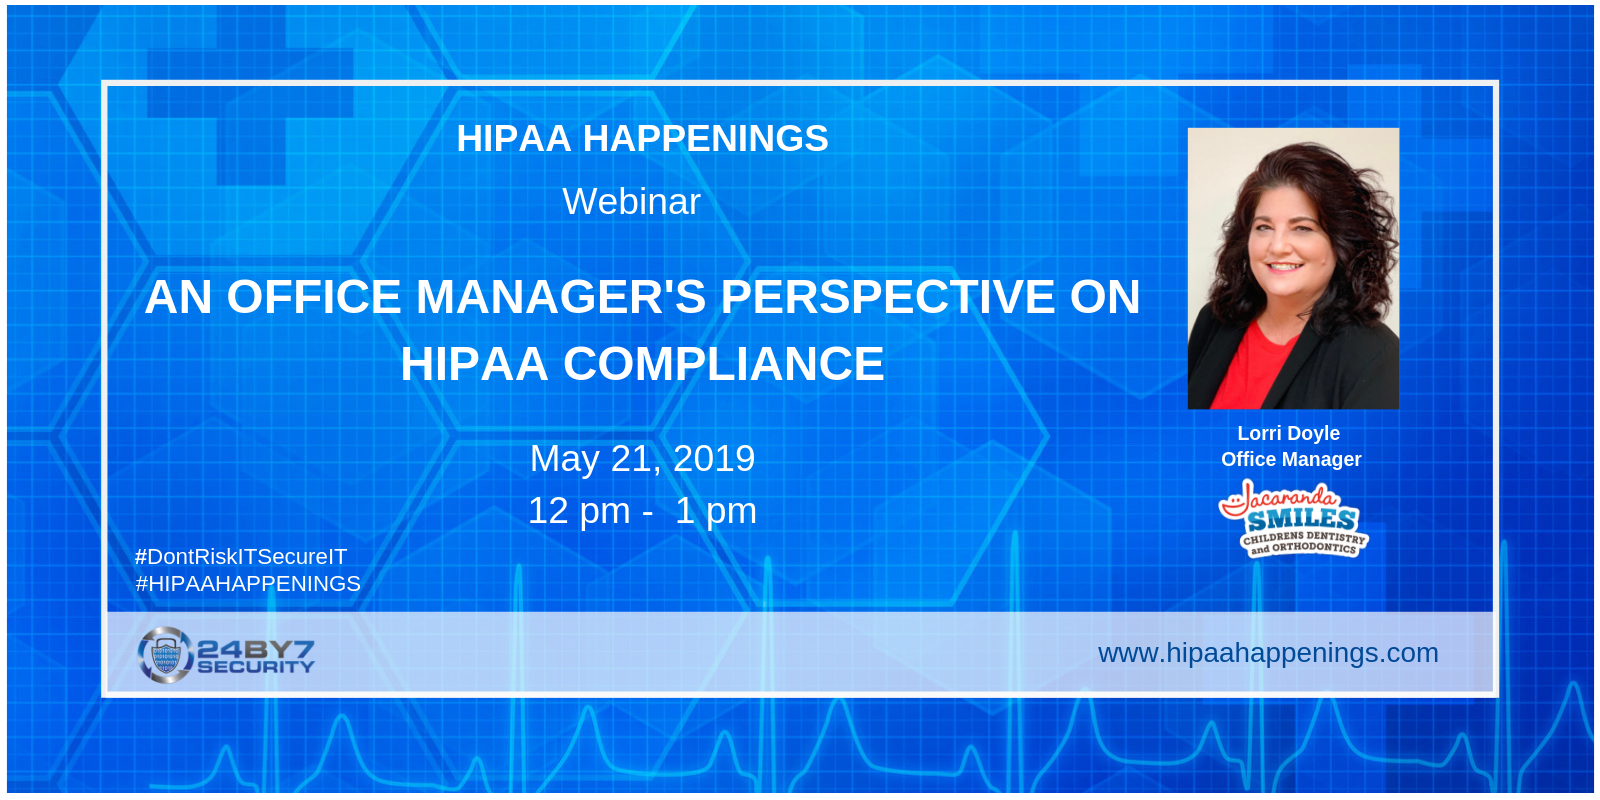 HIPAA HAPPENINGS Office Manager Perspective HIPAA compliance 24By7Security webinar-1